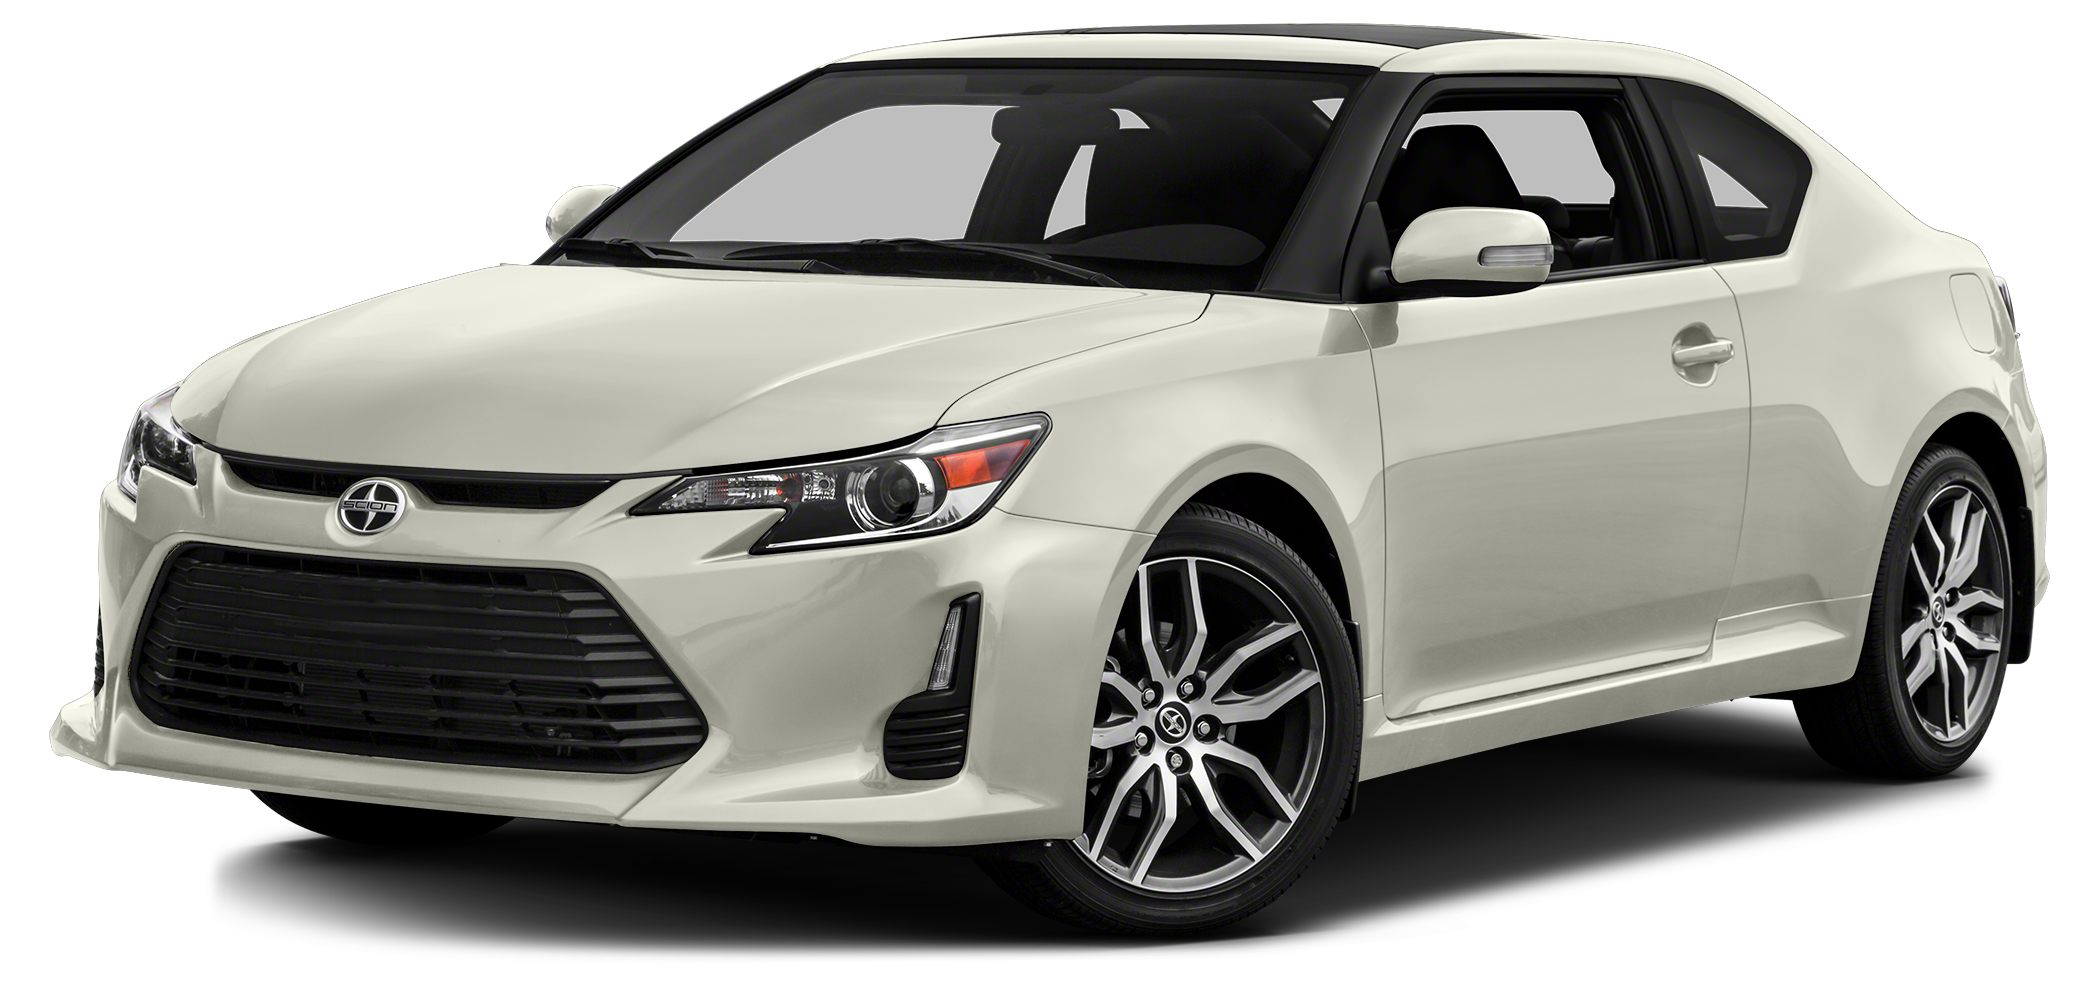 2015 Scion tC Base CARFAX 1-Owner tC trim BLIZZARD PEARL exterior and DARK CHARCOAL interior FU